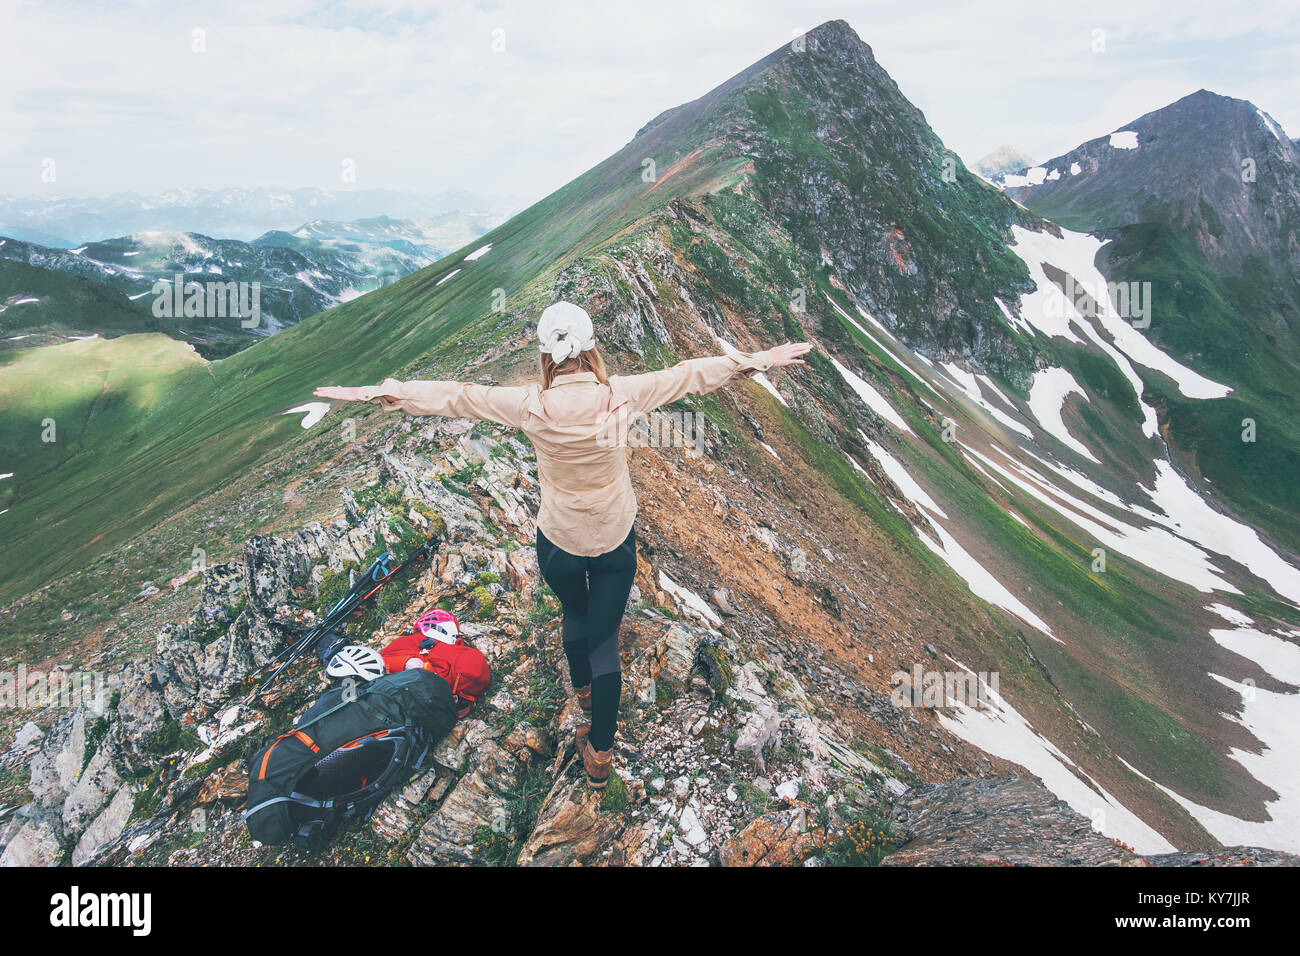 Hiker woman happy hands raised on mountain summit Travel Lifestyle adventure concept summer vacations outdoor exploring - Stock Image